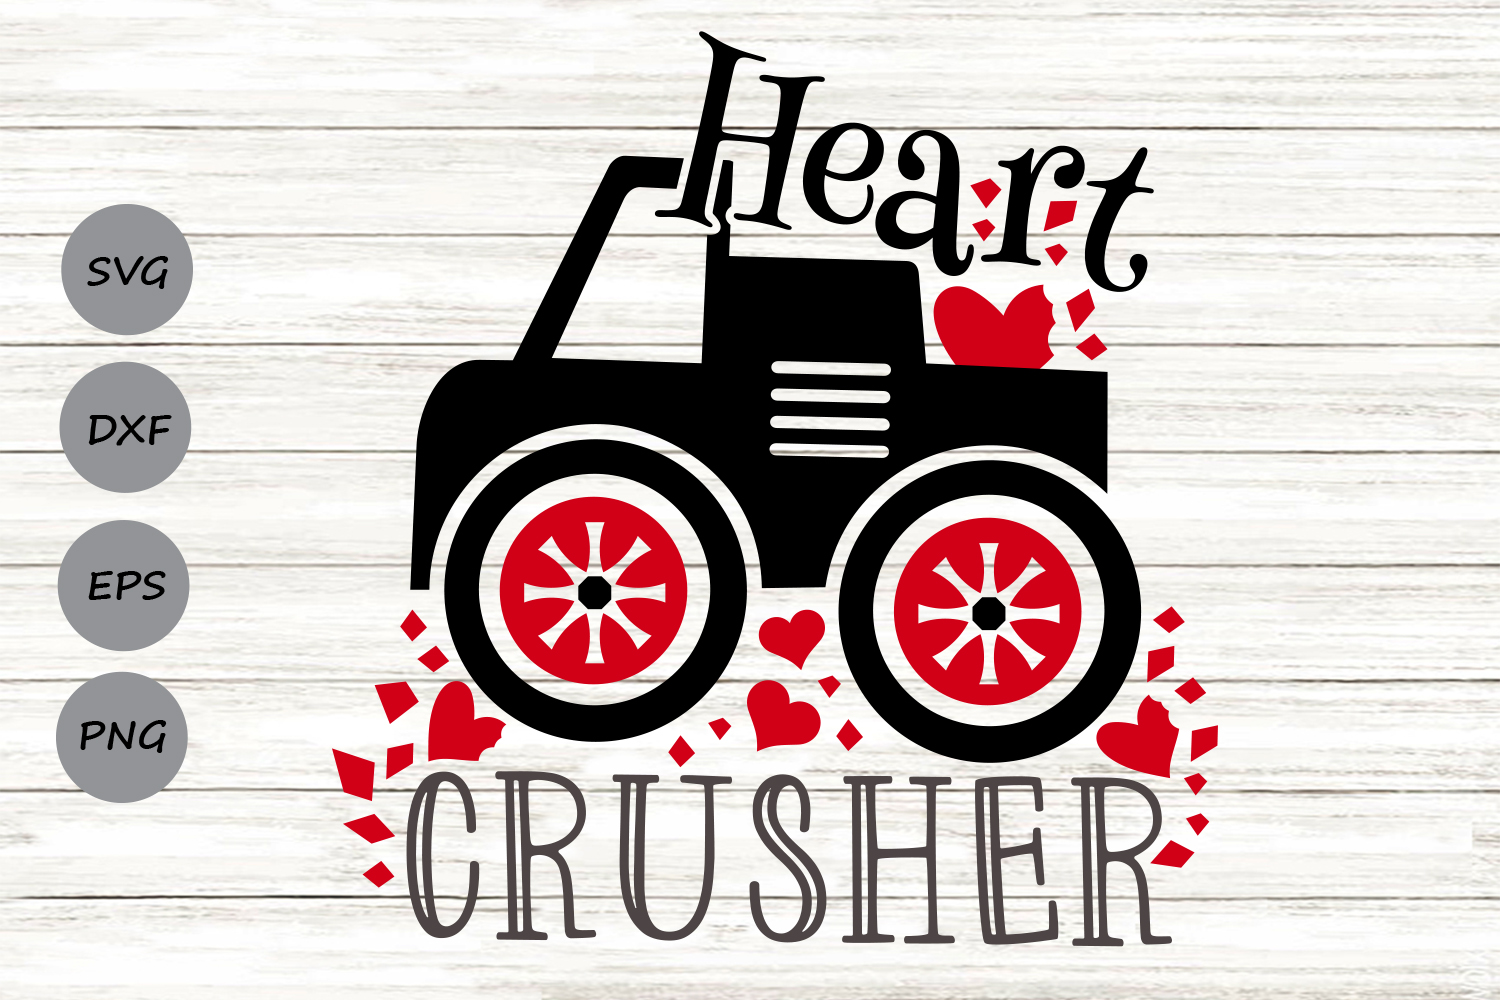 Download Free Heart Crusher Graphic By Cosmosfineart Creative Fabrica for Cricut Explore, Silhouette and other cutting machines.